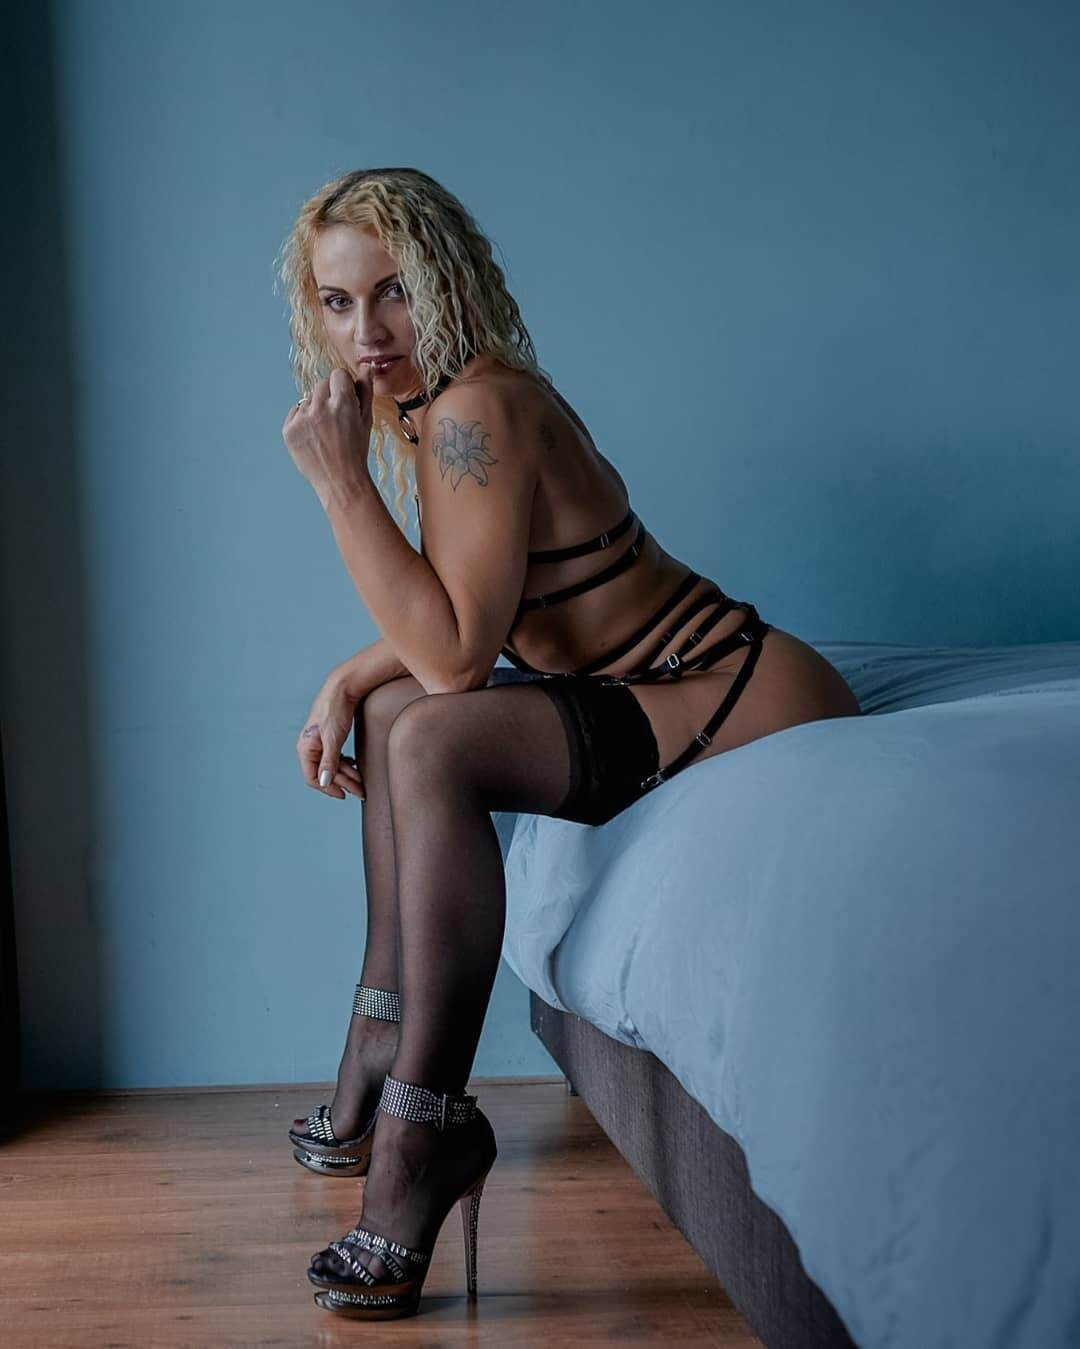 Beautiful blonde Dutch model Willeke Bartels sitting on her bed showing her sexy legs and hot milf body wearing black lingerie with black nylon stockings and high heels in a sensual photo session